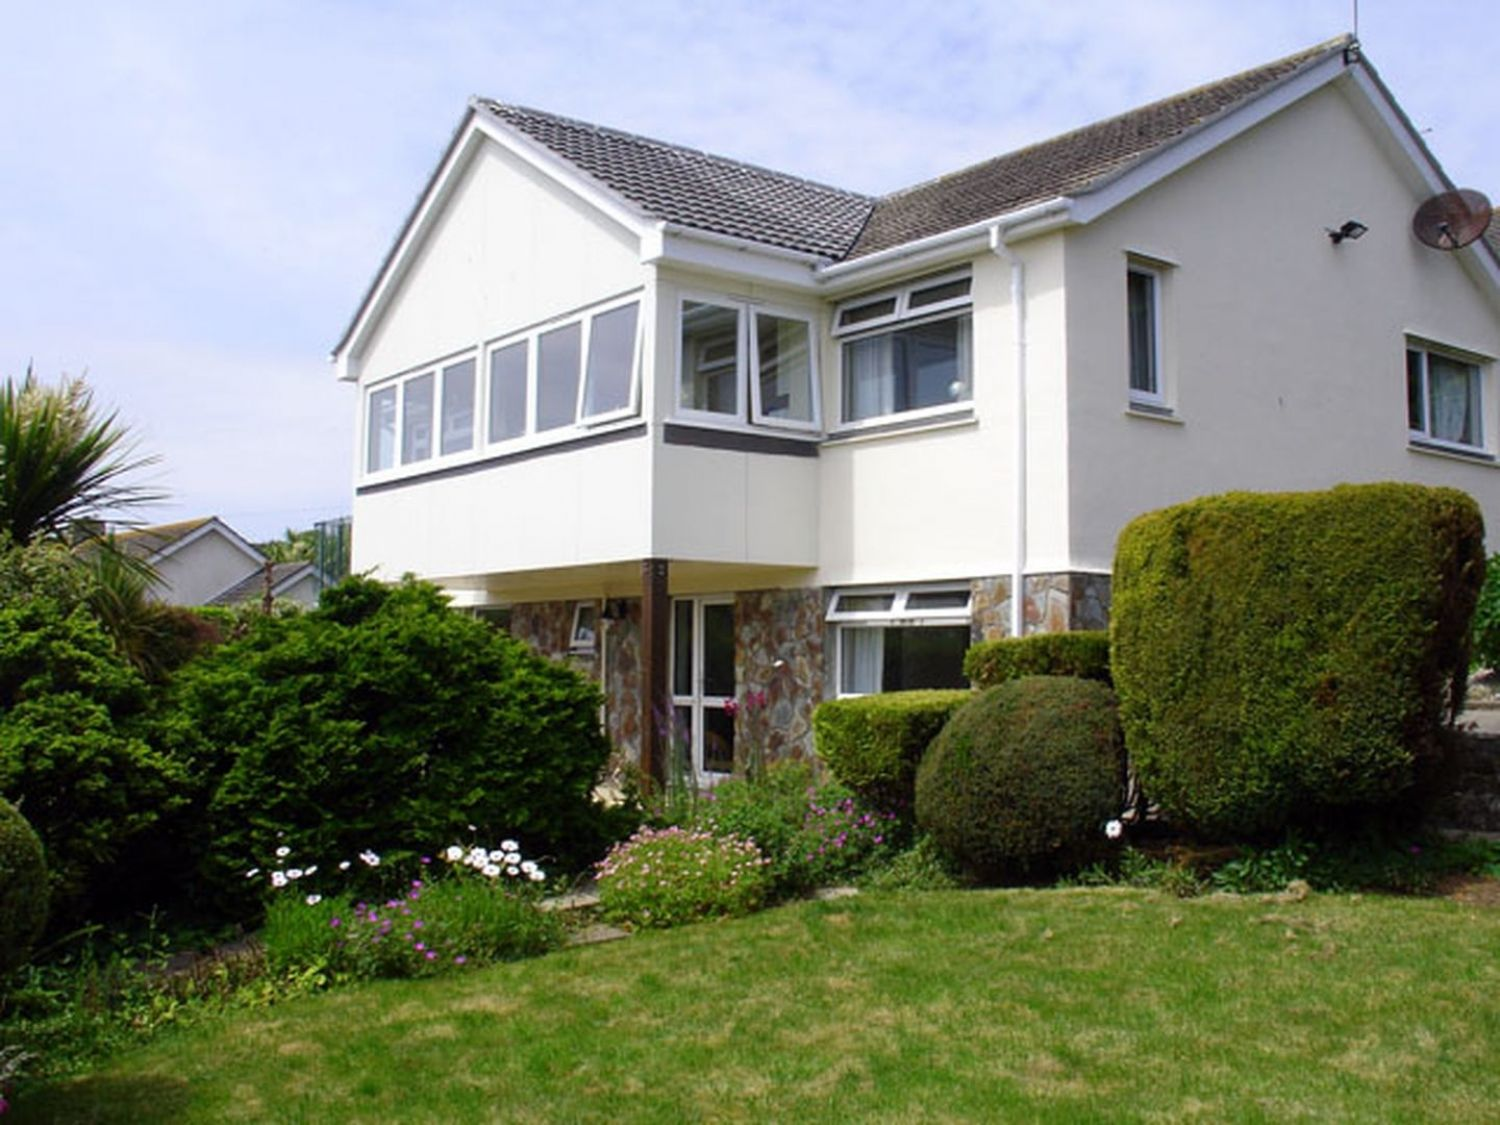 1 Gwelenys Road - Cornwall - 976555 - photo 1